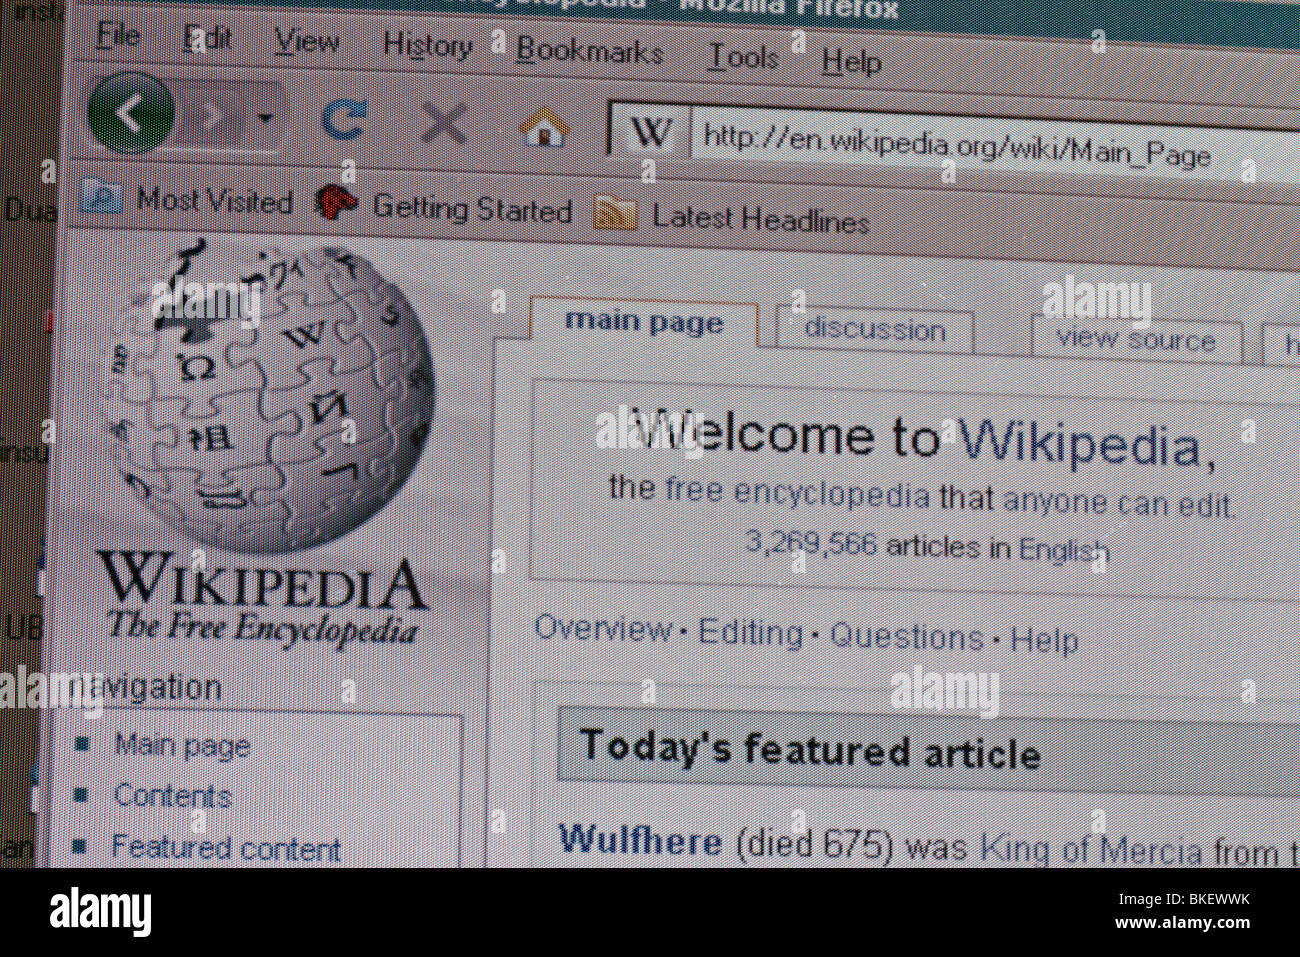 Wikipedia Website Editorial Use Only Stock Photo Royalty Free - Wikipedia royalty free images